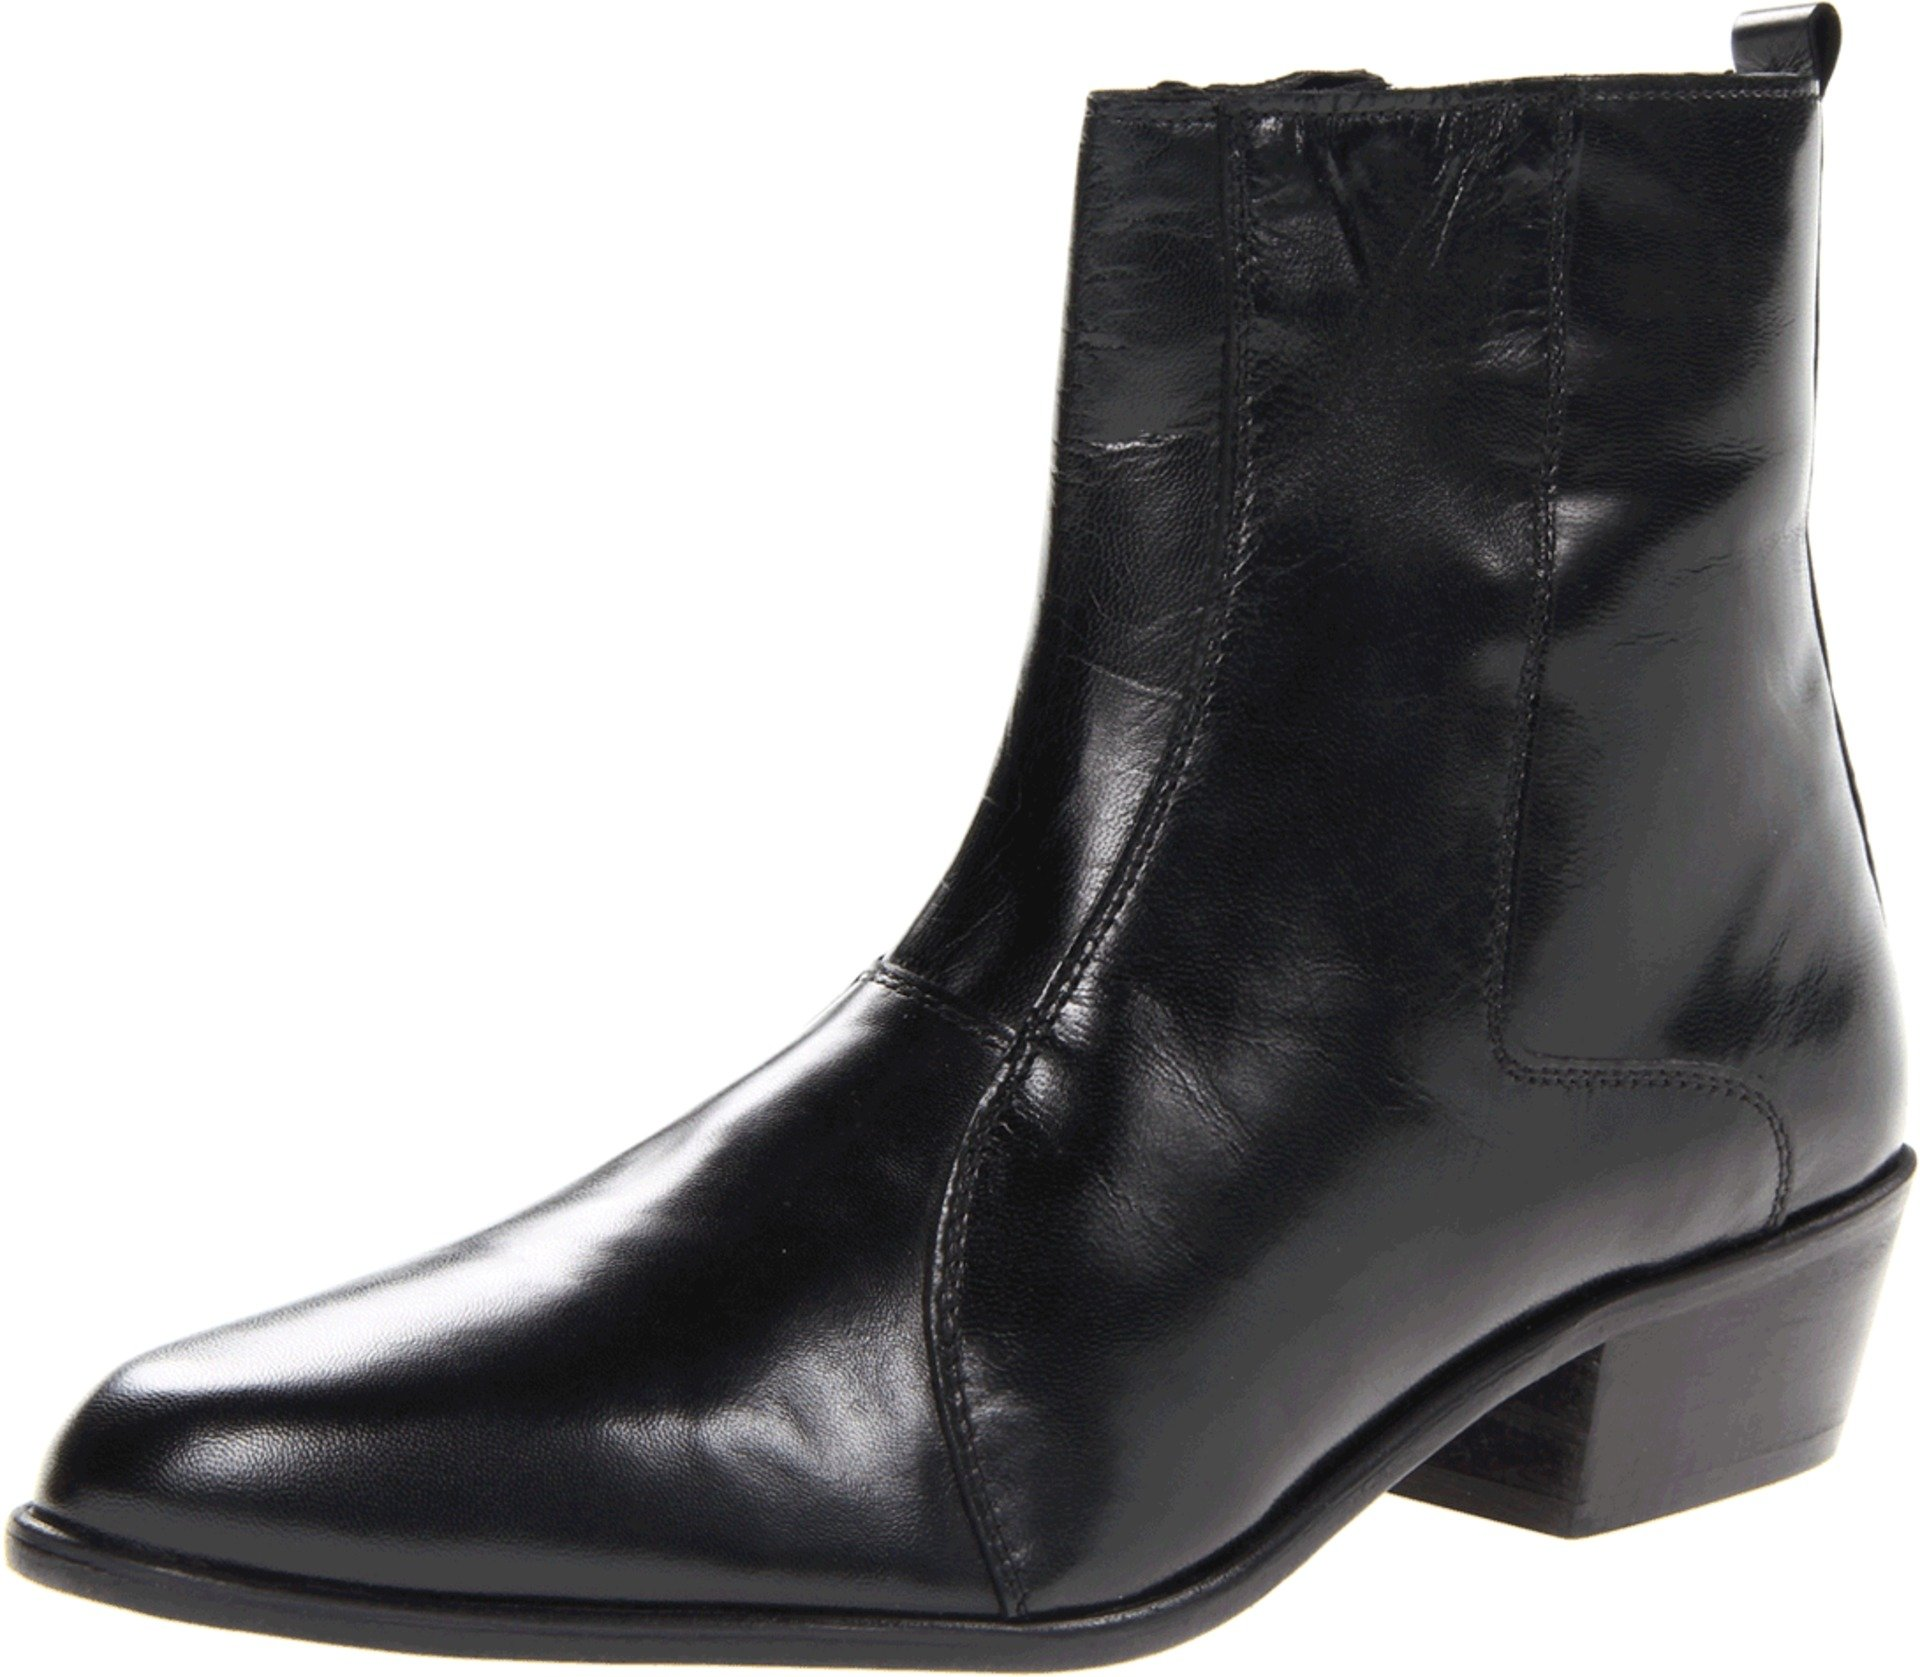 Stacy Adams Men's Santos Boot,Black,8 M US by Stacy Adams